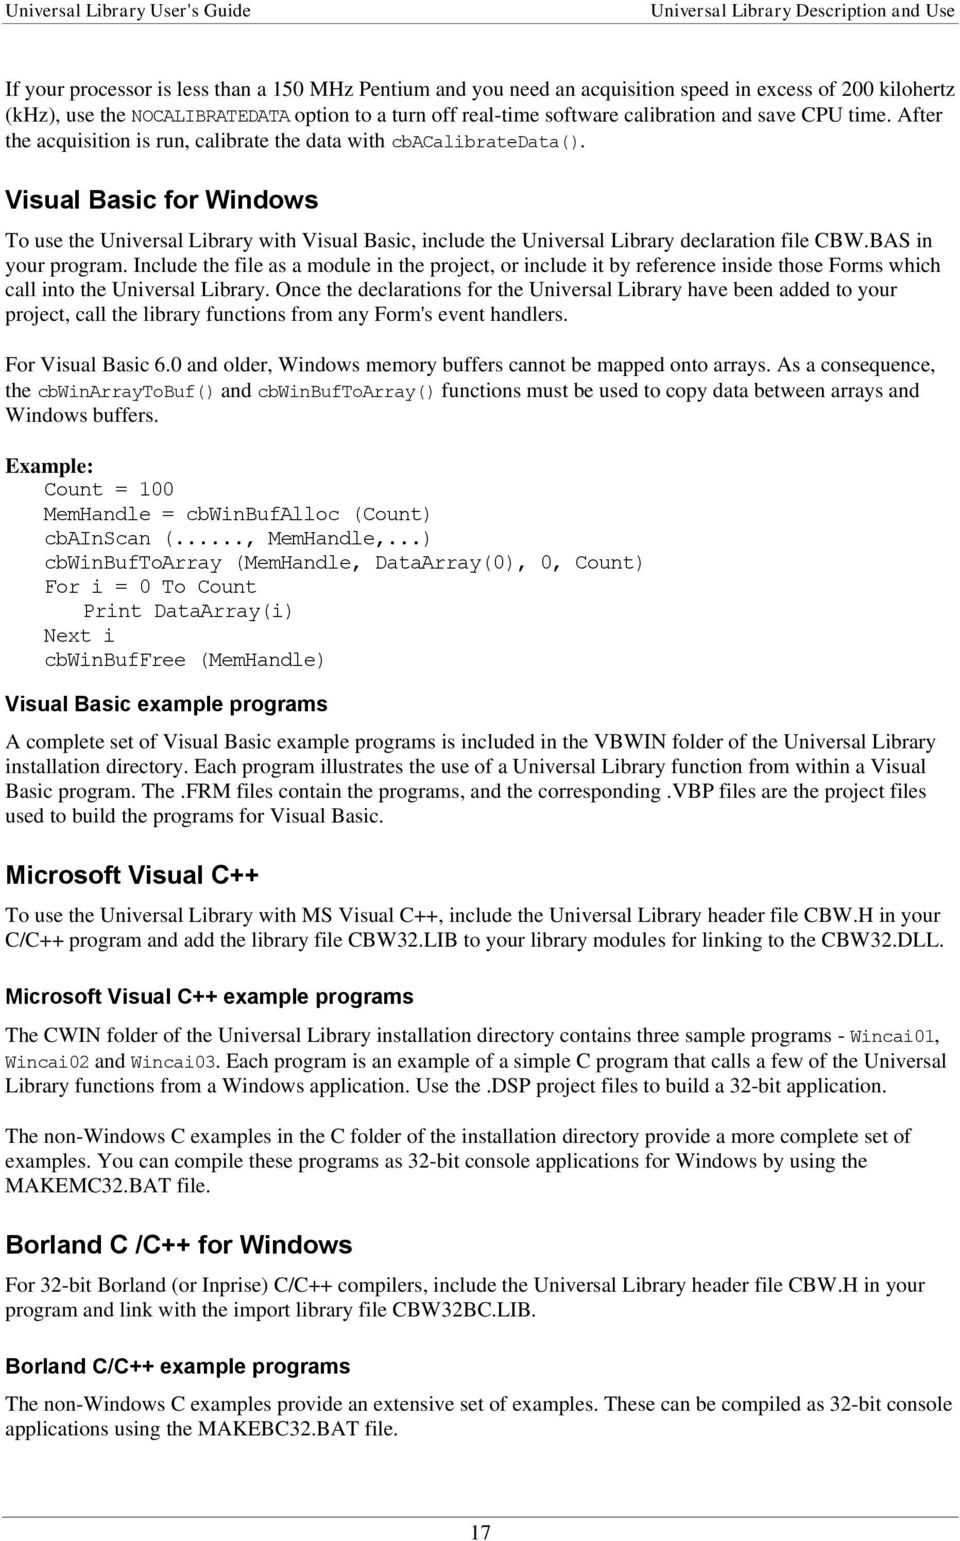 Universal Library User s Guide - PDF